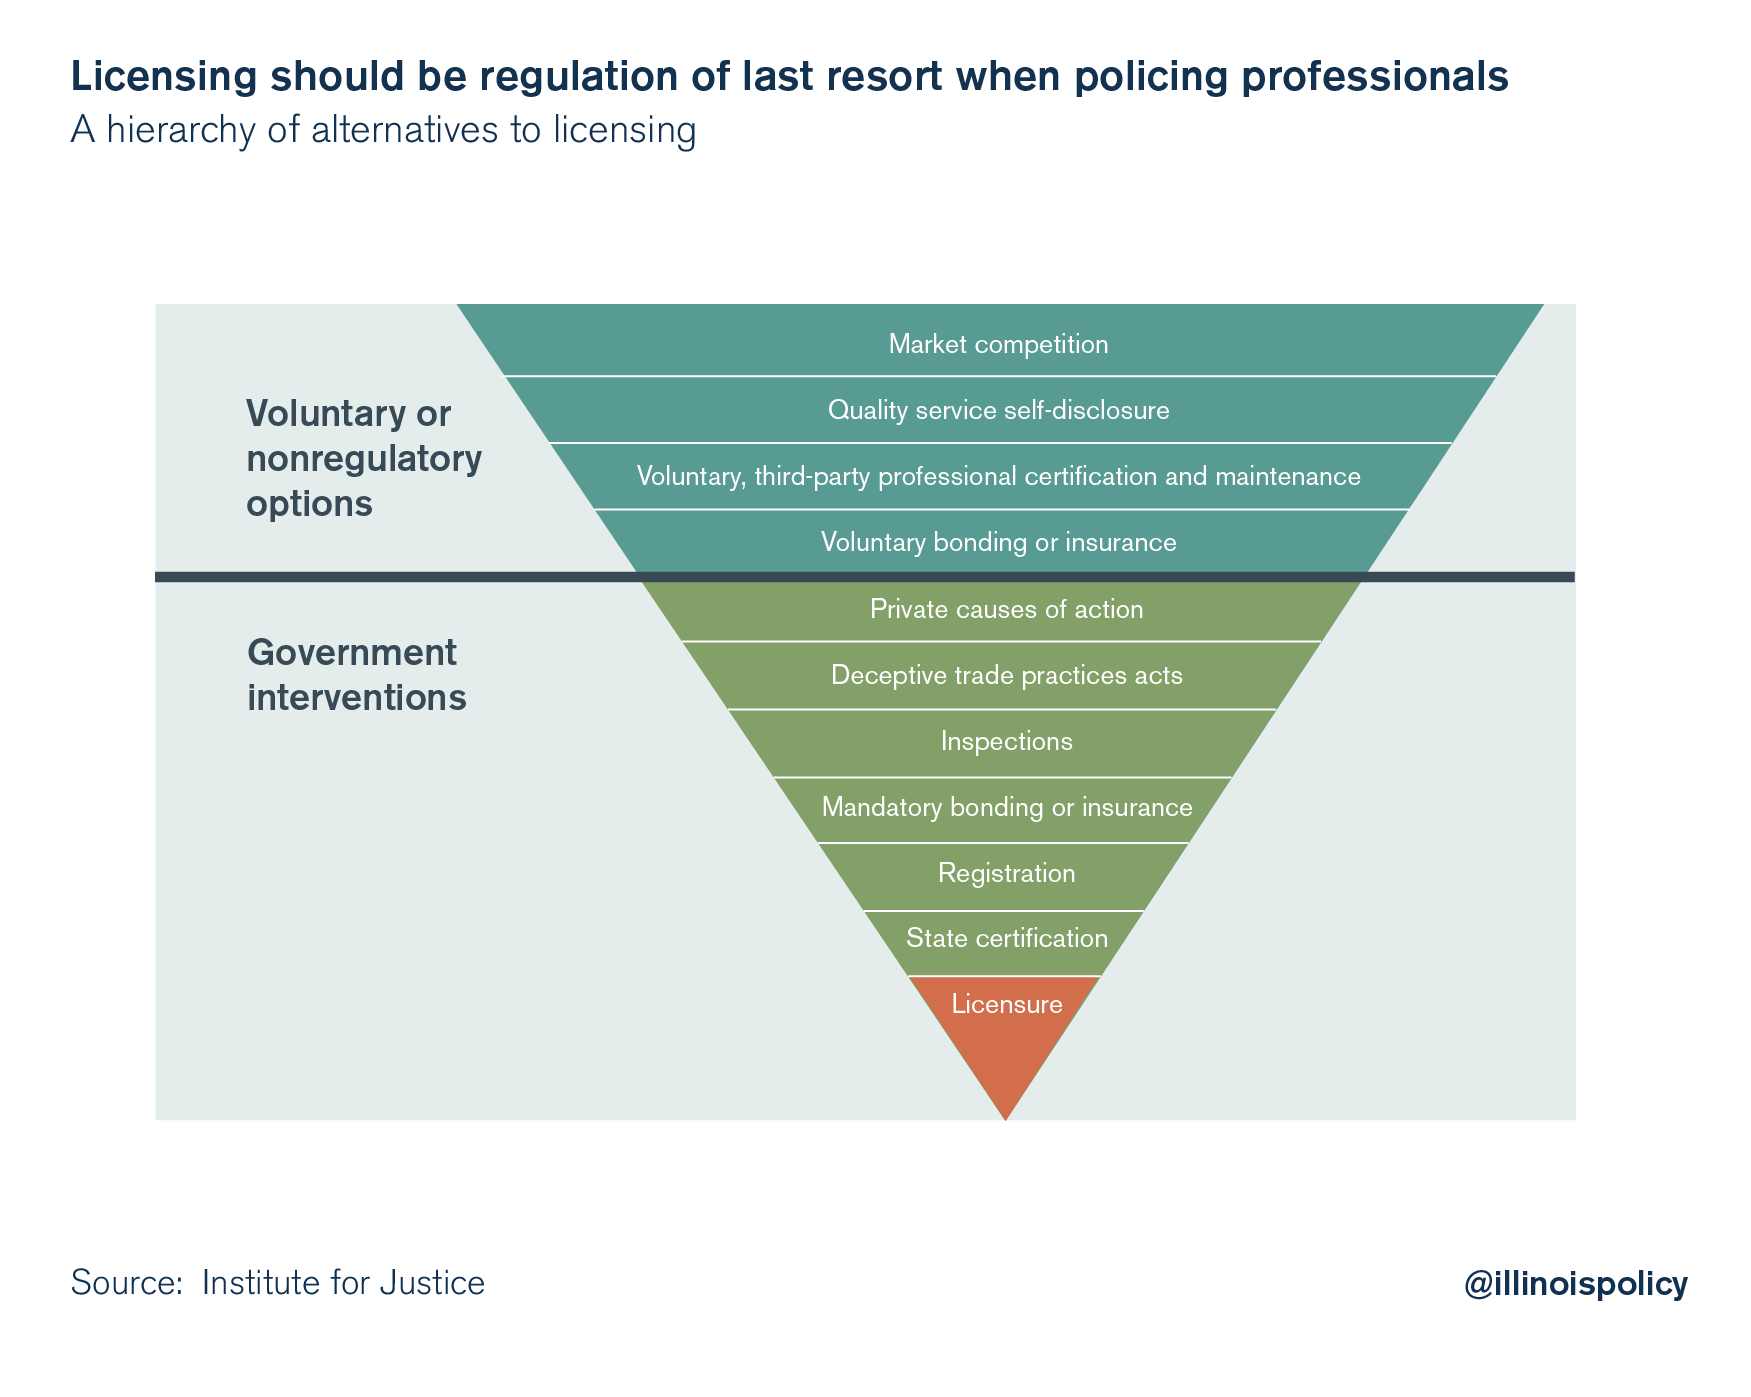 liscensing should be regulation of last resort when policing professionals